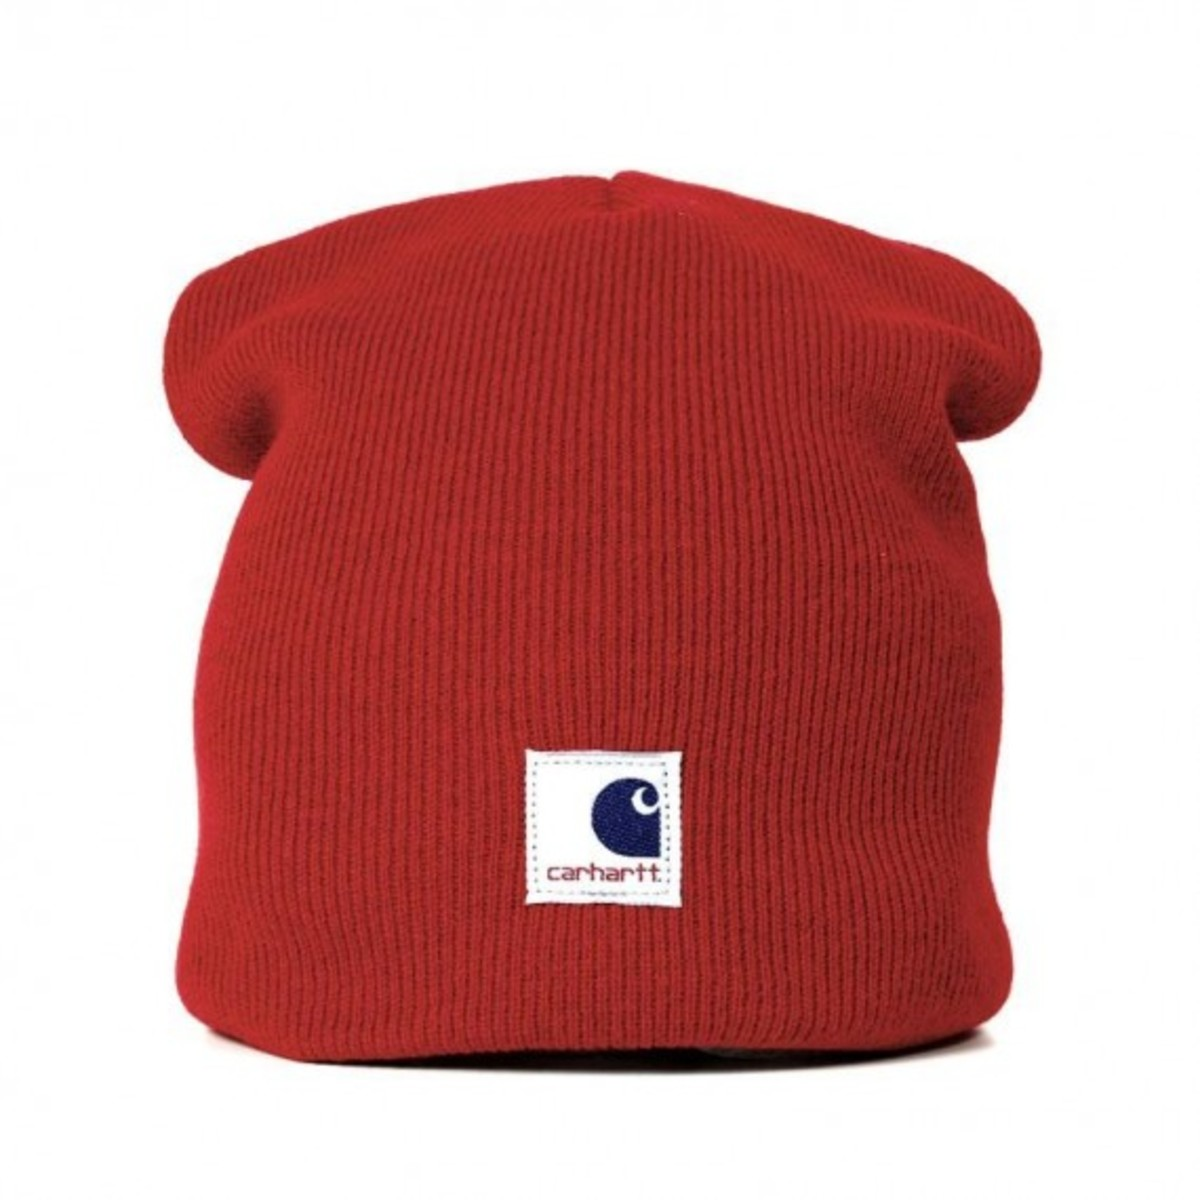 knit-hat-red